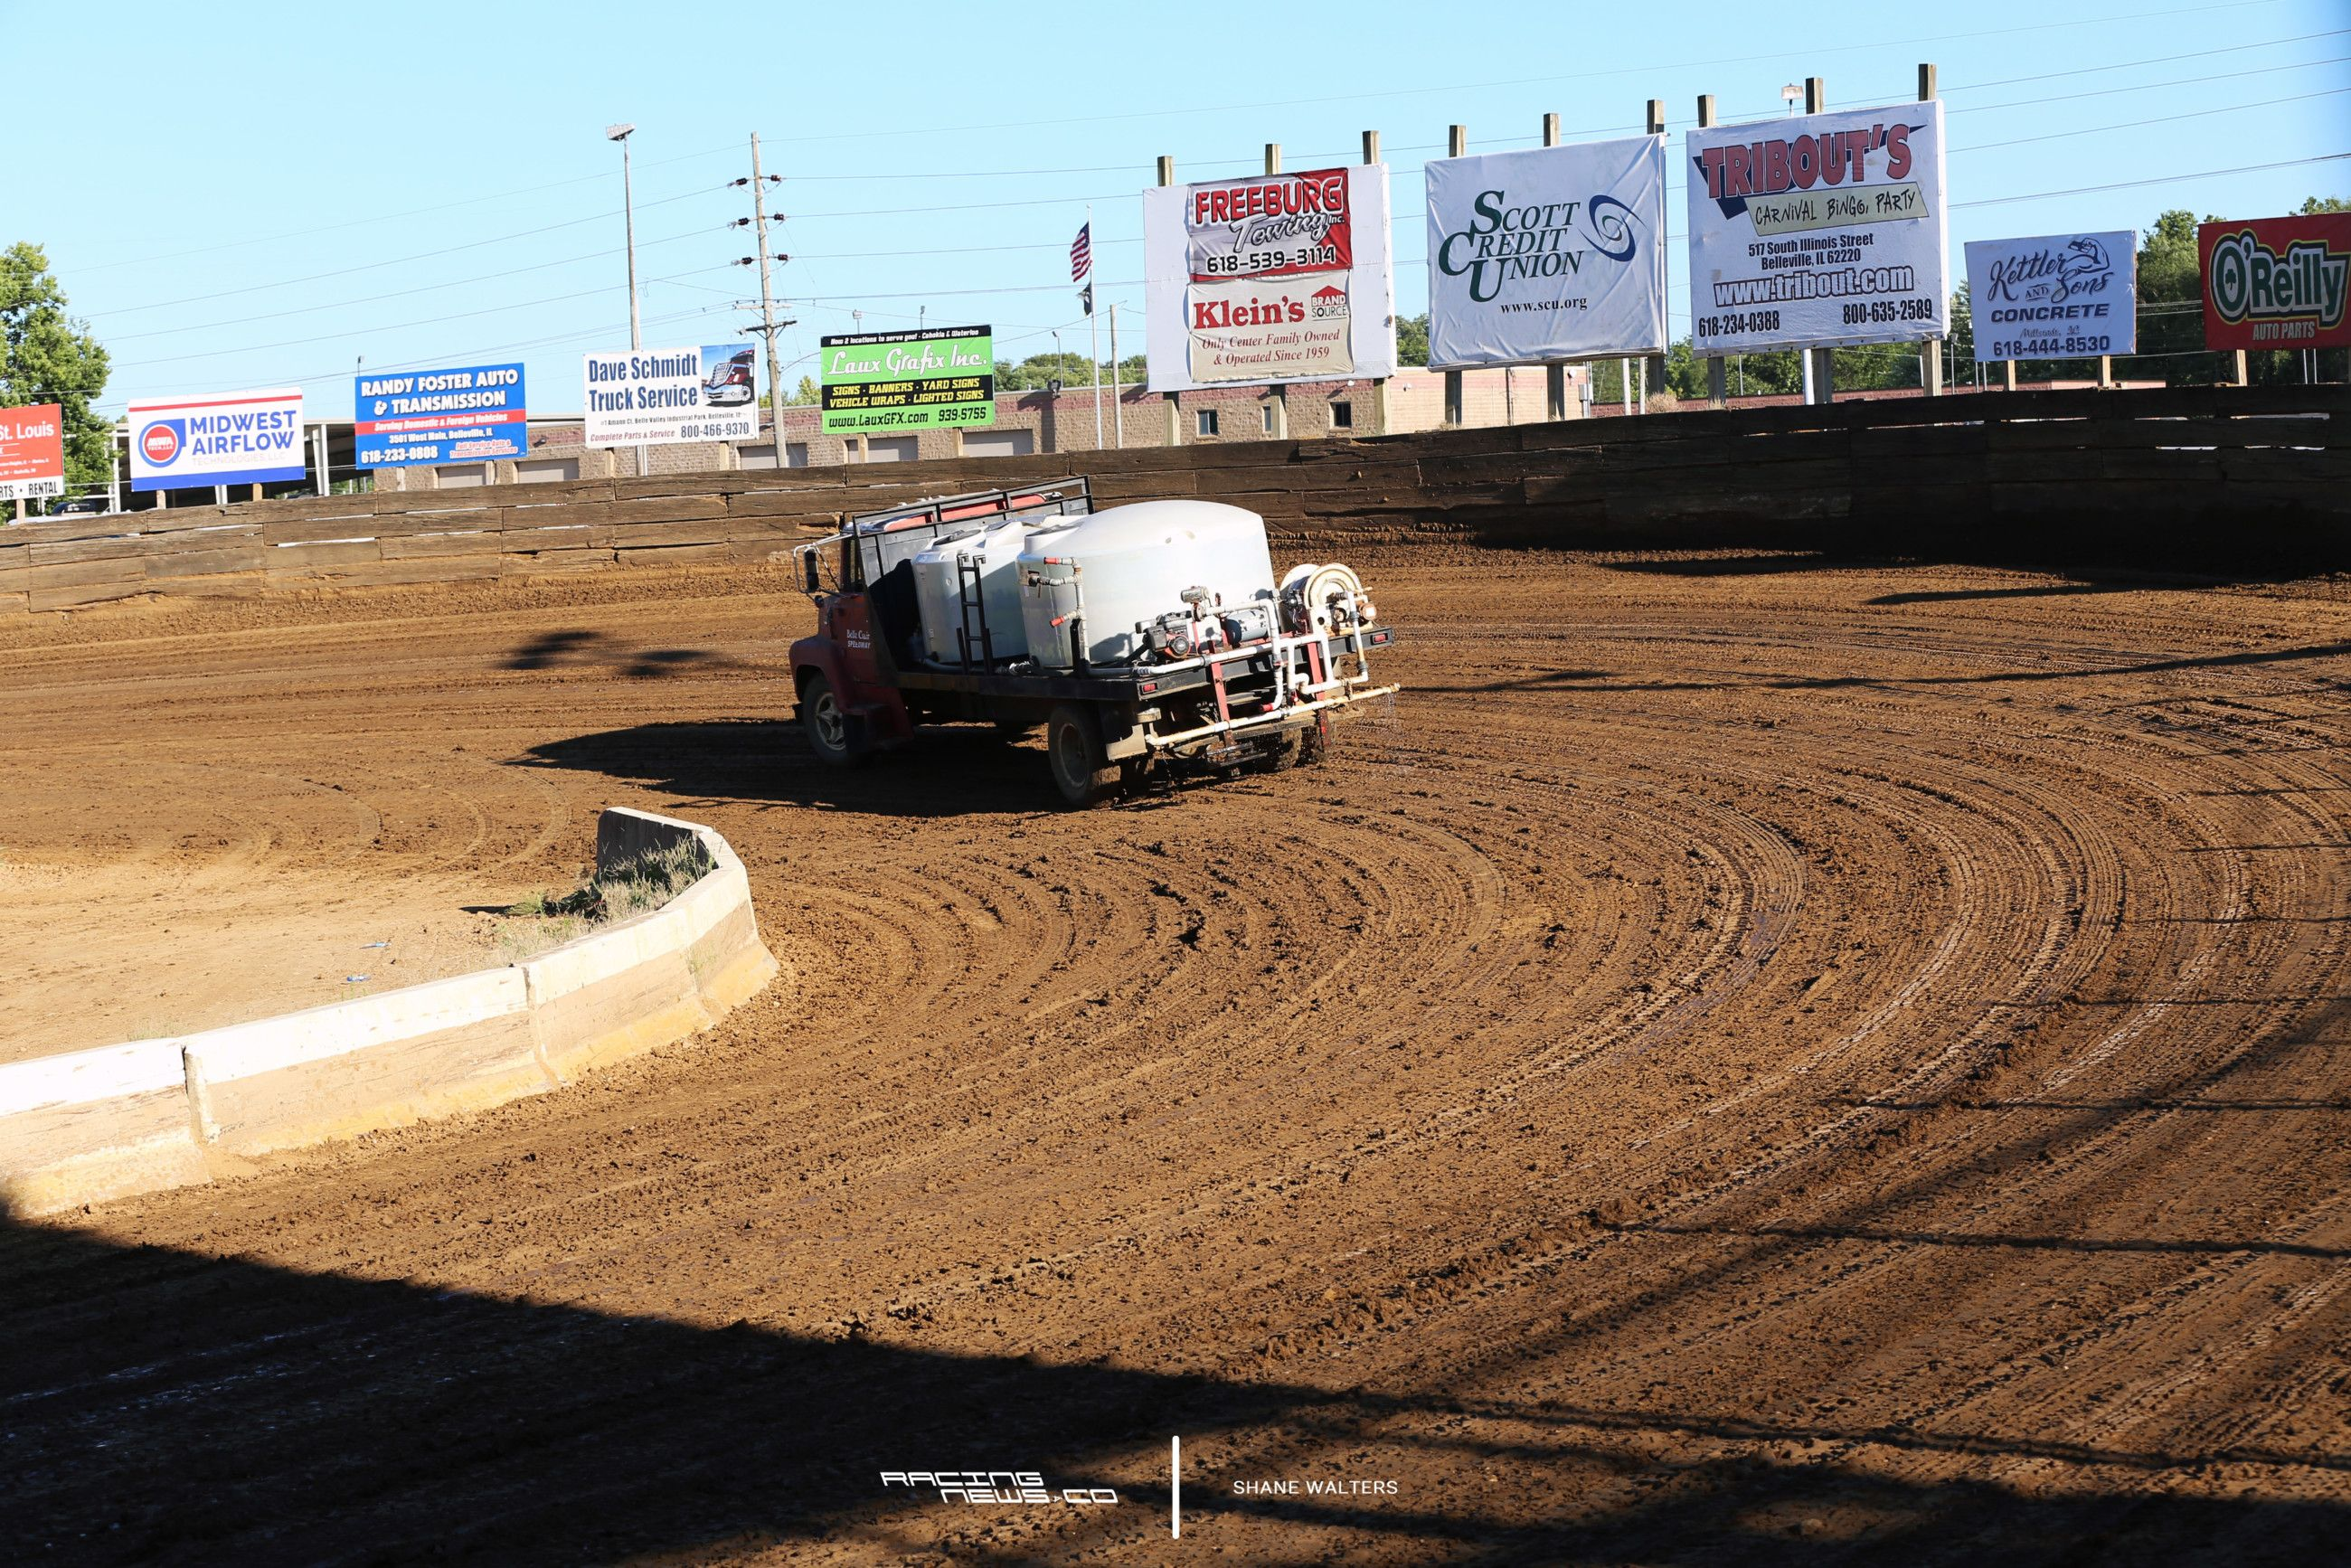 Dale Earnhardt Jr Had Ideas To Build A Dirt Track When He Retired